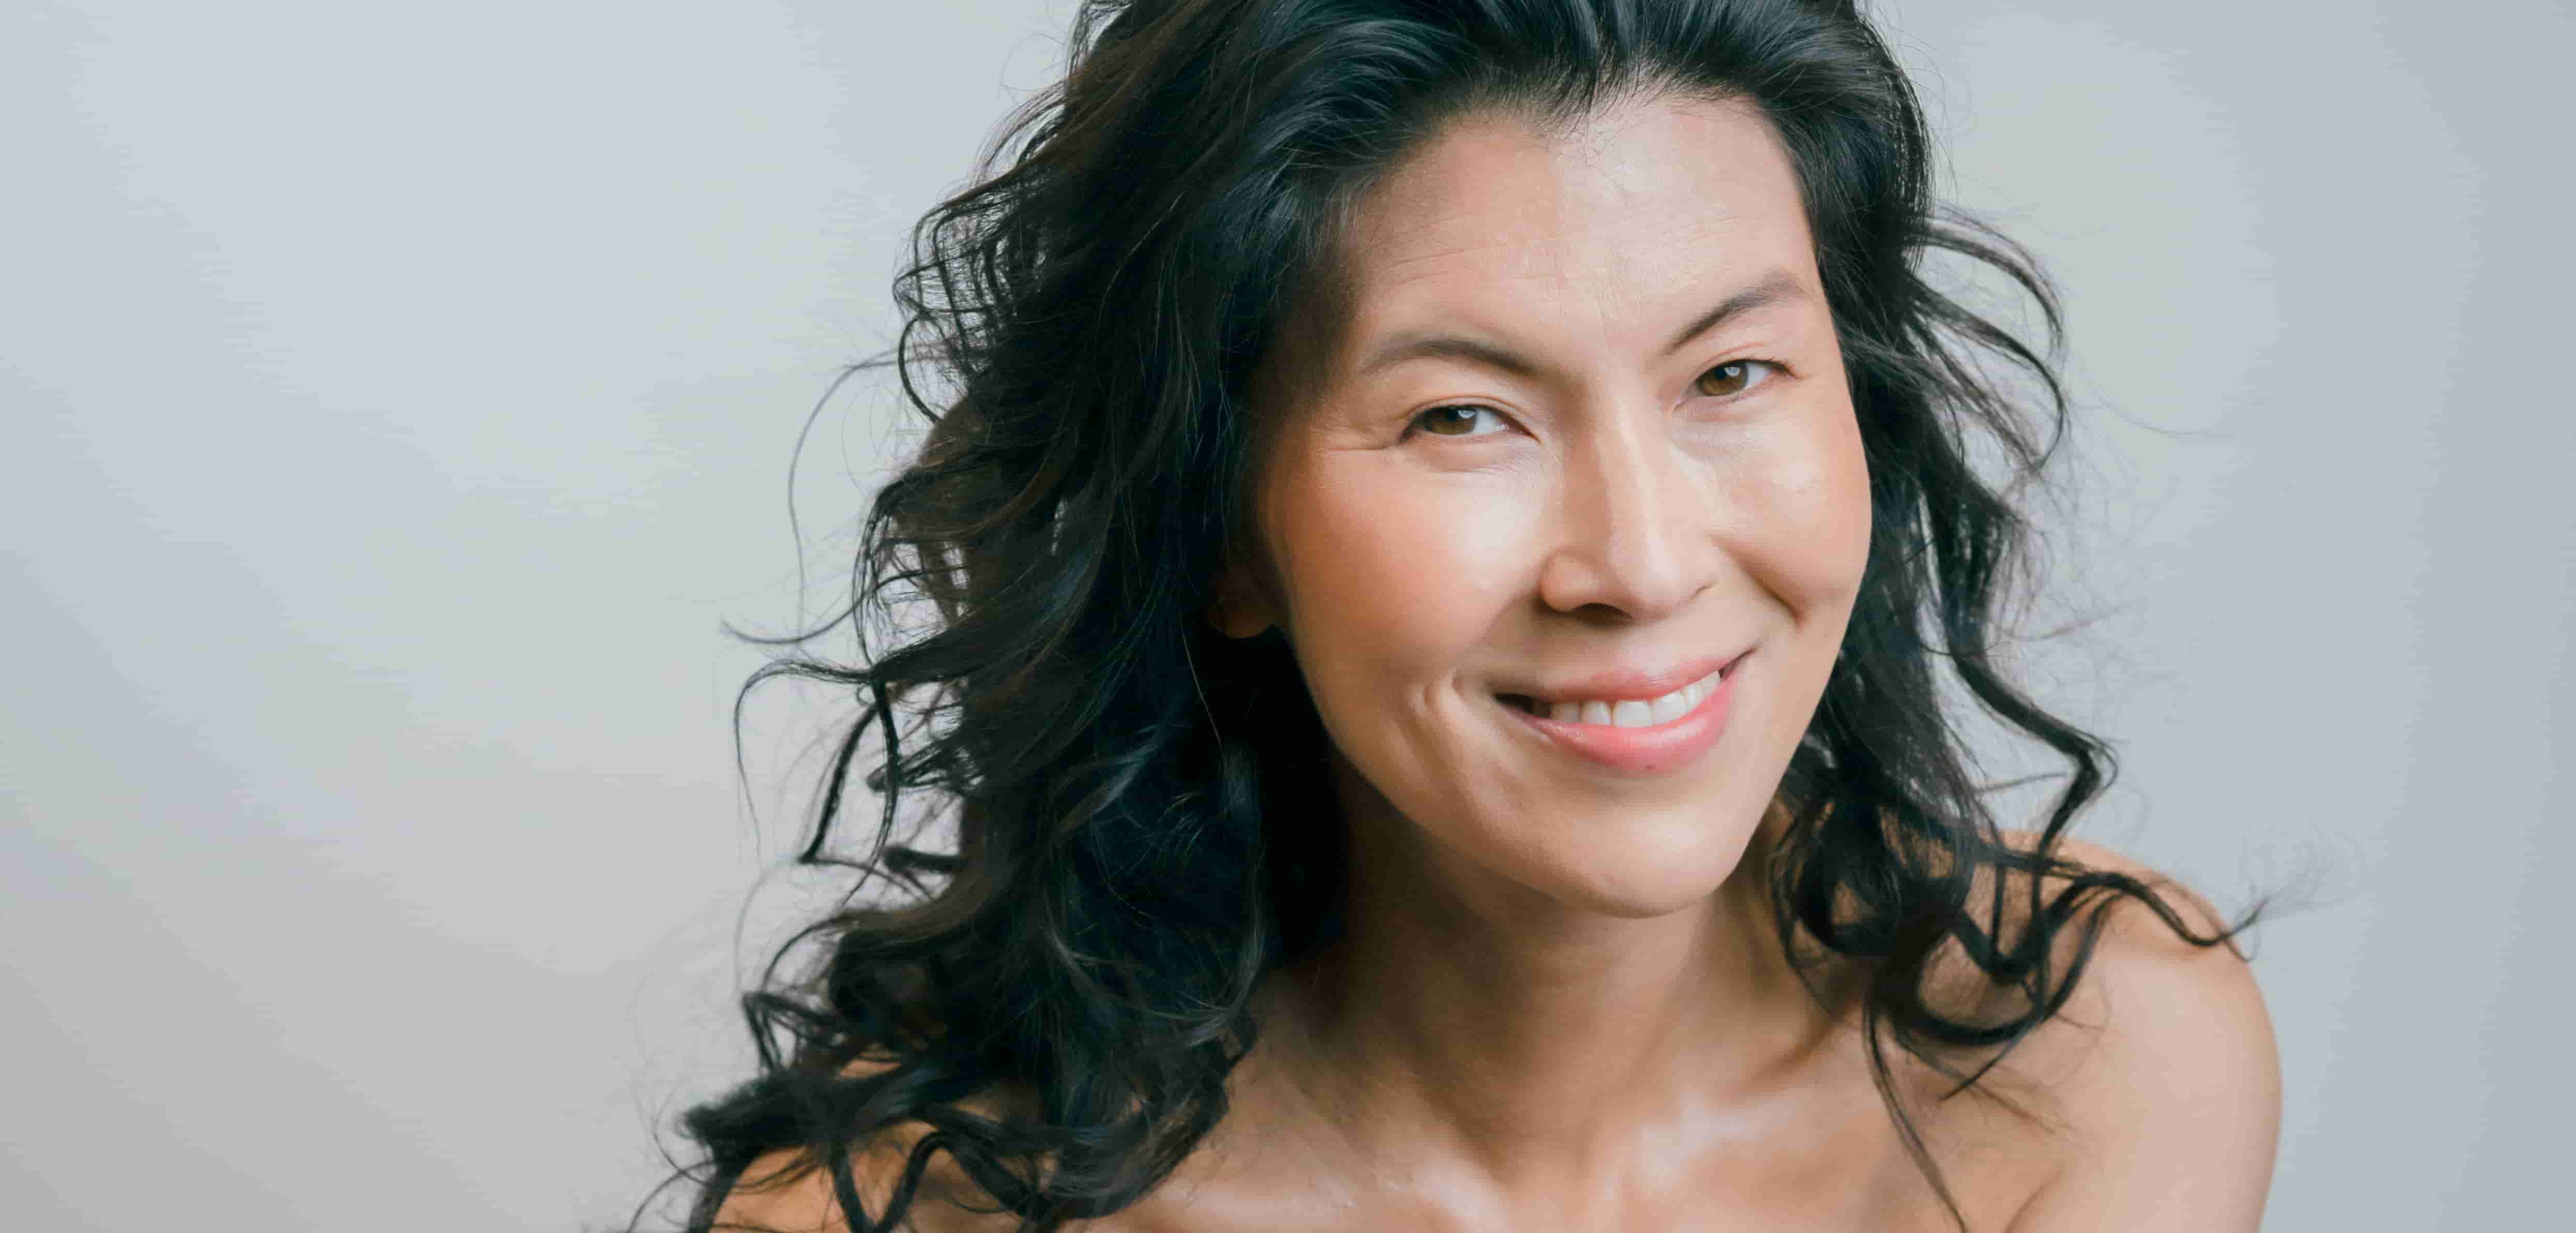 Asian woman with wavy hair happily smiling - feminine dryness remedies